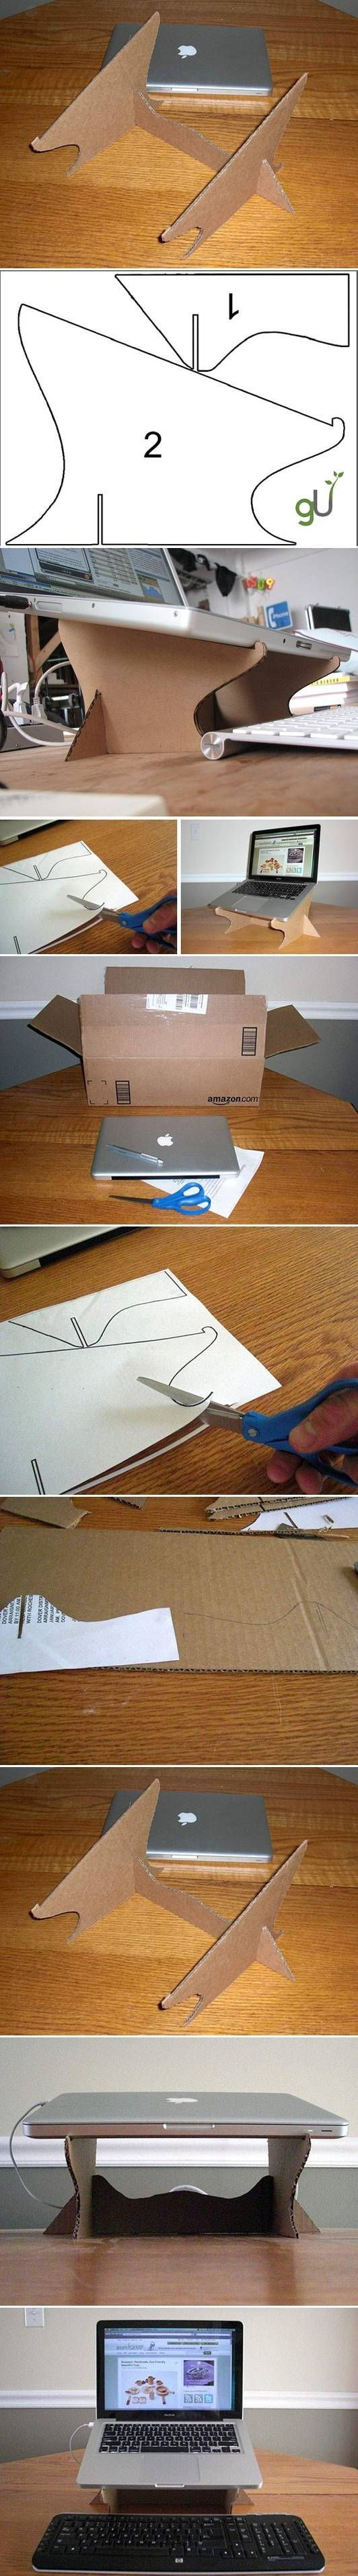 DIY Simple Cardboard Laptop Stand DIY Projects | UsefulDIY.com Follow us on Facebook ==> https://www.facebook.com/UsefulDiy